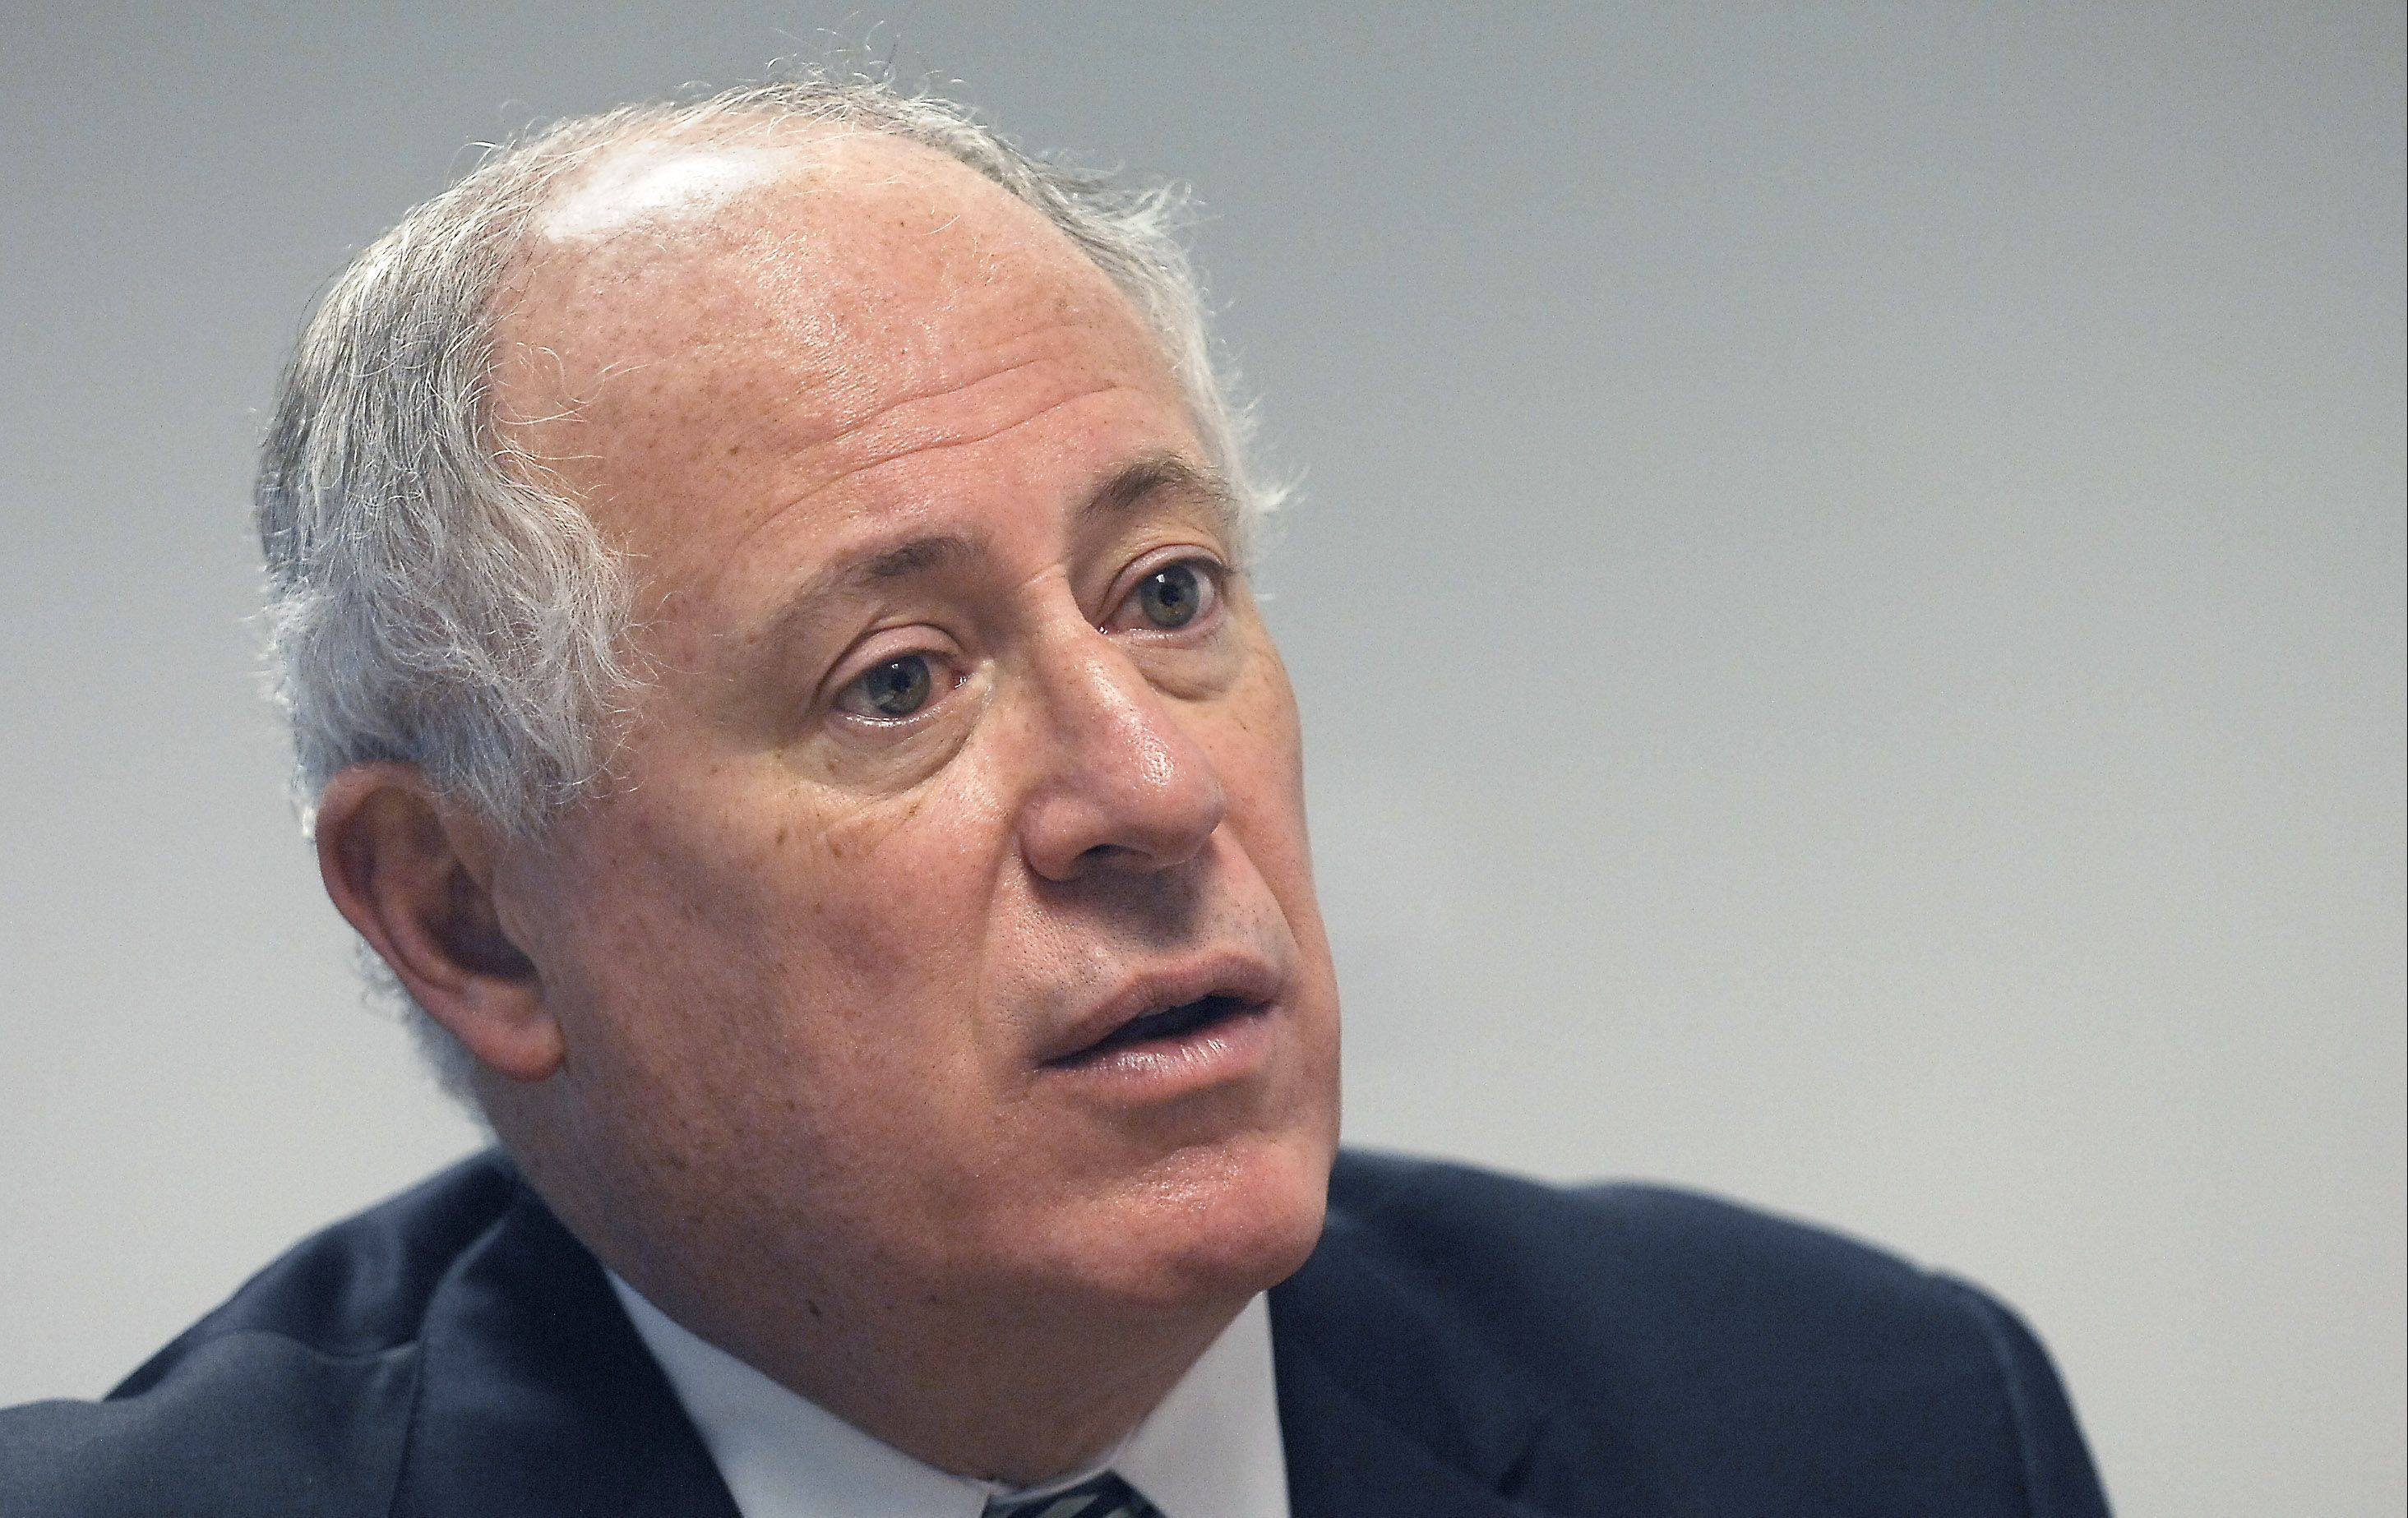 Gov. Pat Quinn, who is expected to speak at the Democratic National Convention in Charlotte this week, faces an uphill battle if he tries to curb contributions from the gambling industry to state lawmakers.